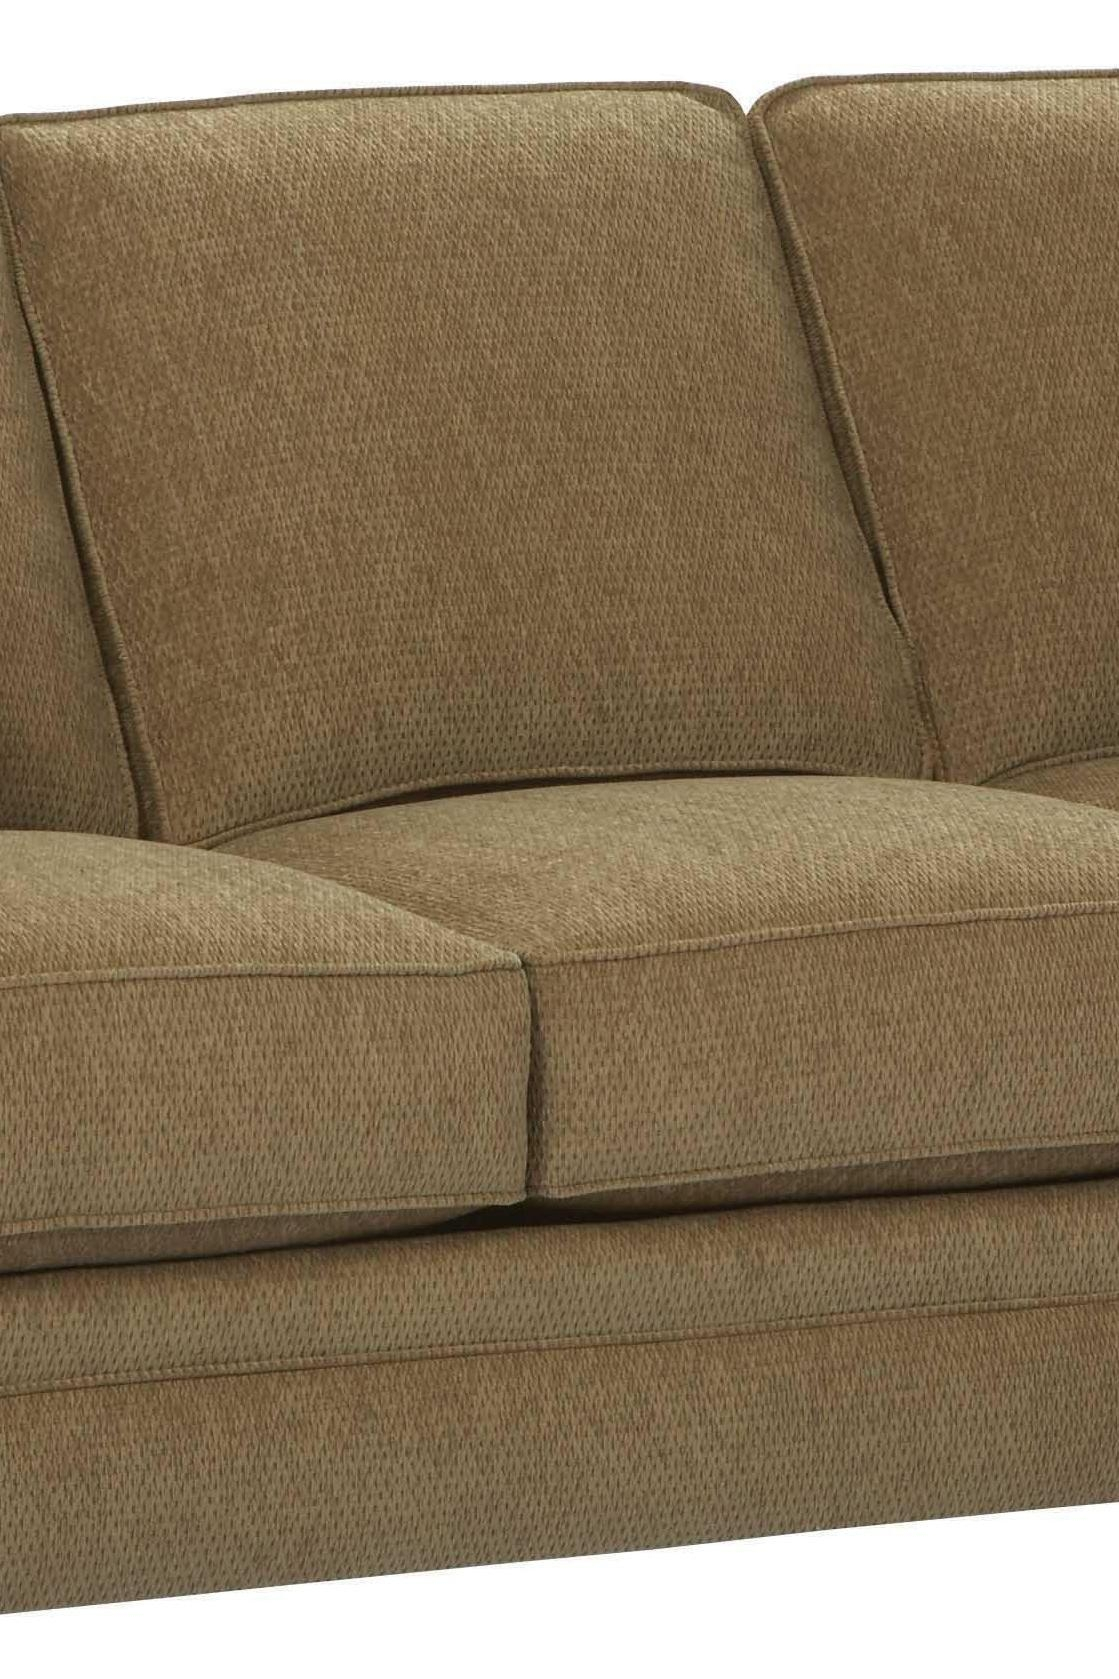 Broyhill Furniture Larissa Queen Goodnight Sleeper Sofa – Value For Broyhill Larissa Sofas (Image 1 of 20)